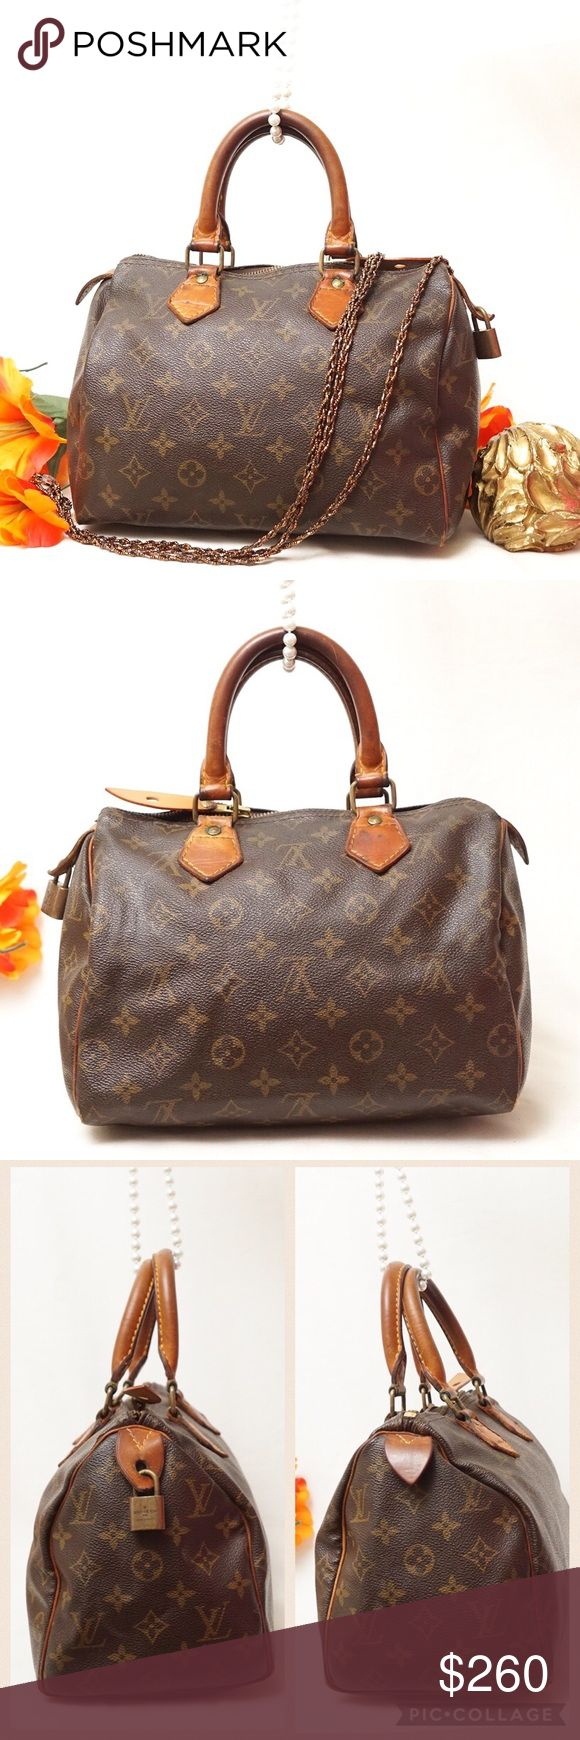 """AUTH LOUIS VUITTON SPEEDY 25 SATCHEL VINTAGE BAG Adorable beautiful LV style. Preloved in good used vintage condition. Exterior leather is in good condition only has a few cracks around the zipper. Zipper cannot close completely as pictured. Handles, corners and inside shows some wear. Still has lots of life. This will be one of the best item your vintage collection will have. Size 10,5""""x7""""x6"""". Serial Code F0 893. AUTHENTIC❣️PATENT LEATHER ❣️FAST SHIPPING!  My items sell fast. Get them…"""